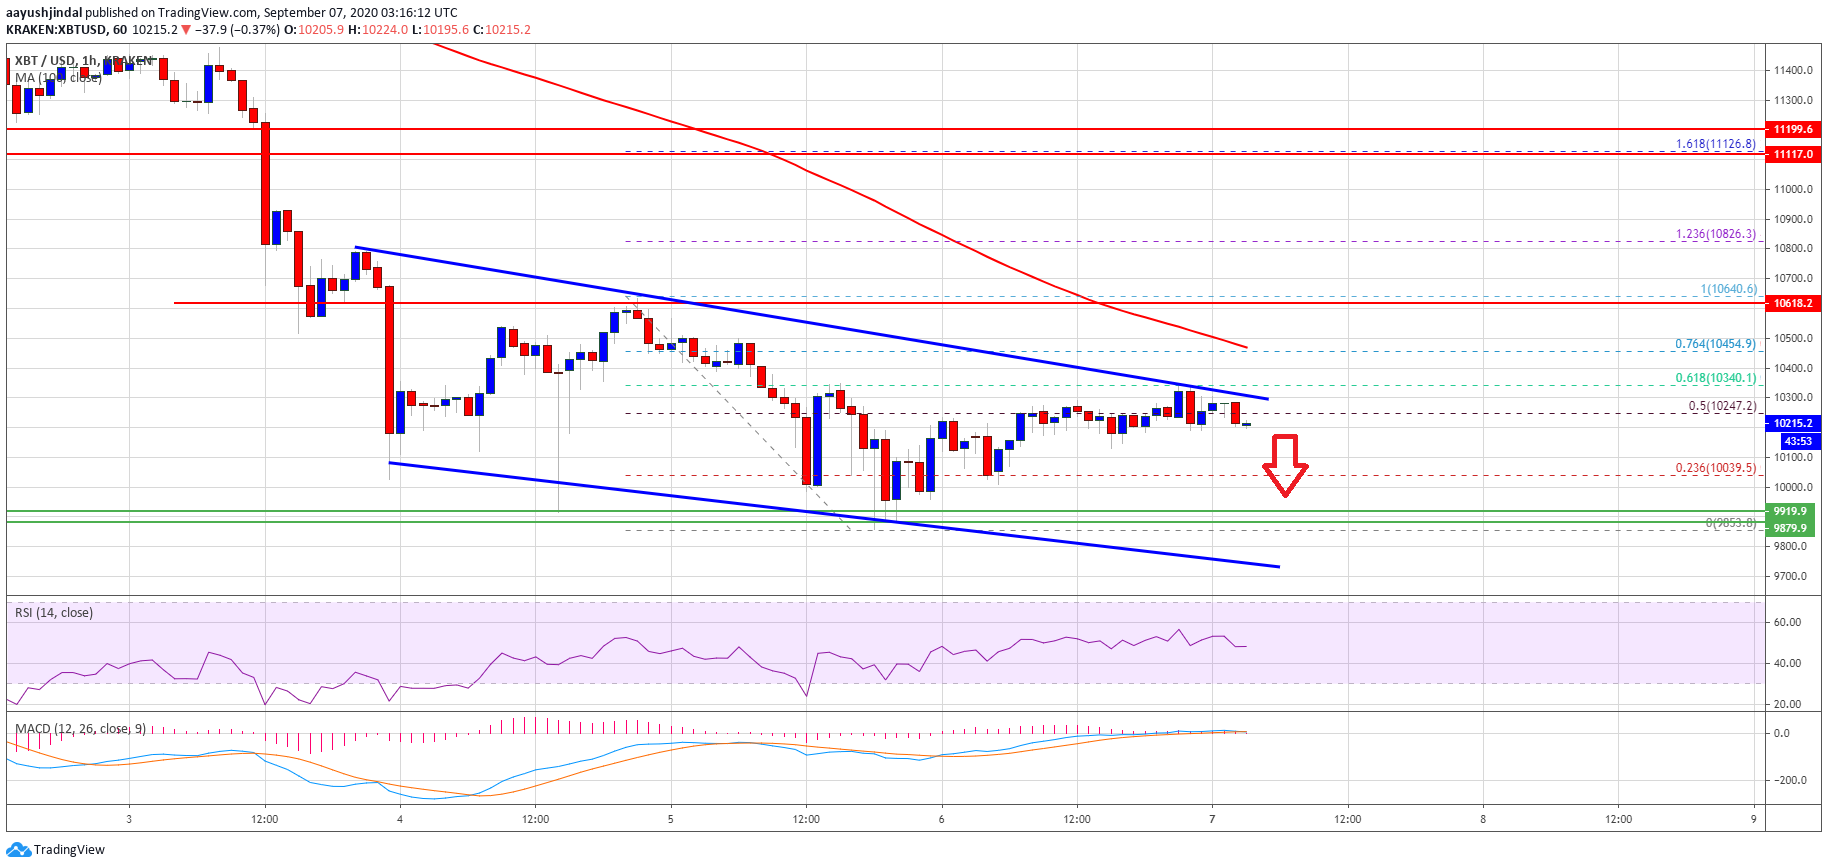 Bitcoin At Potential Risk of Breakdown Below $10,000: Here's Why